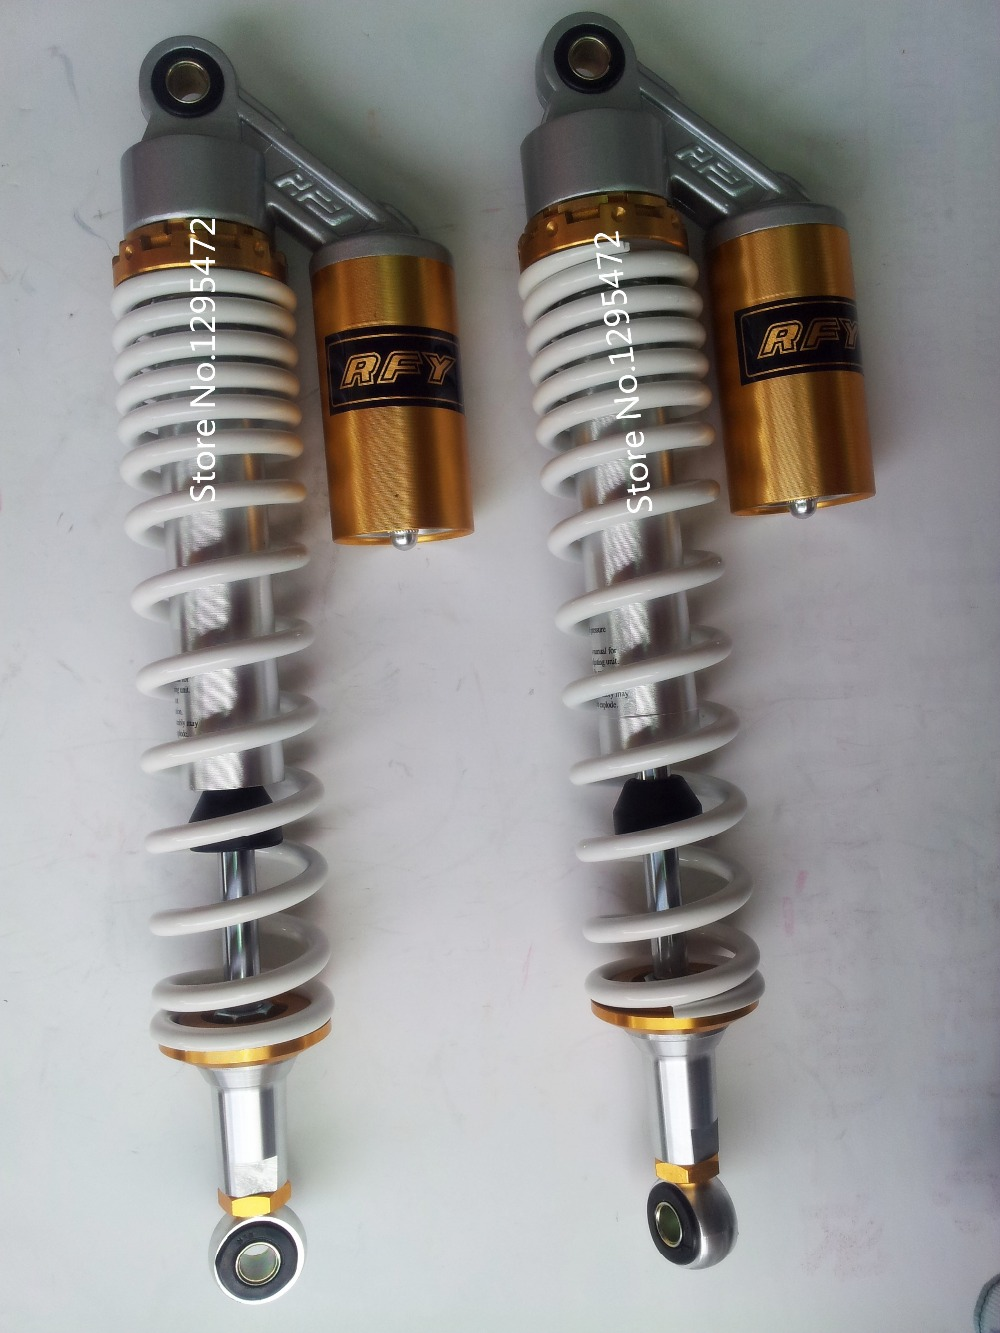 """New 400mm 15.75"""" Motorcycle 8mm Spring Air Shock Absorber  For Yamaha YFZ450 Raptor 700 660 Banshee ATV Color White+silver+gold"""